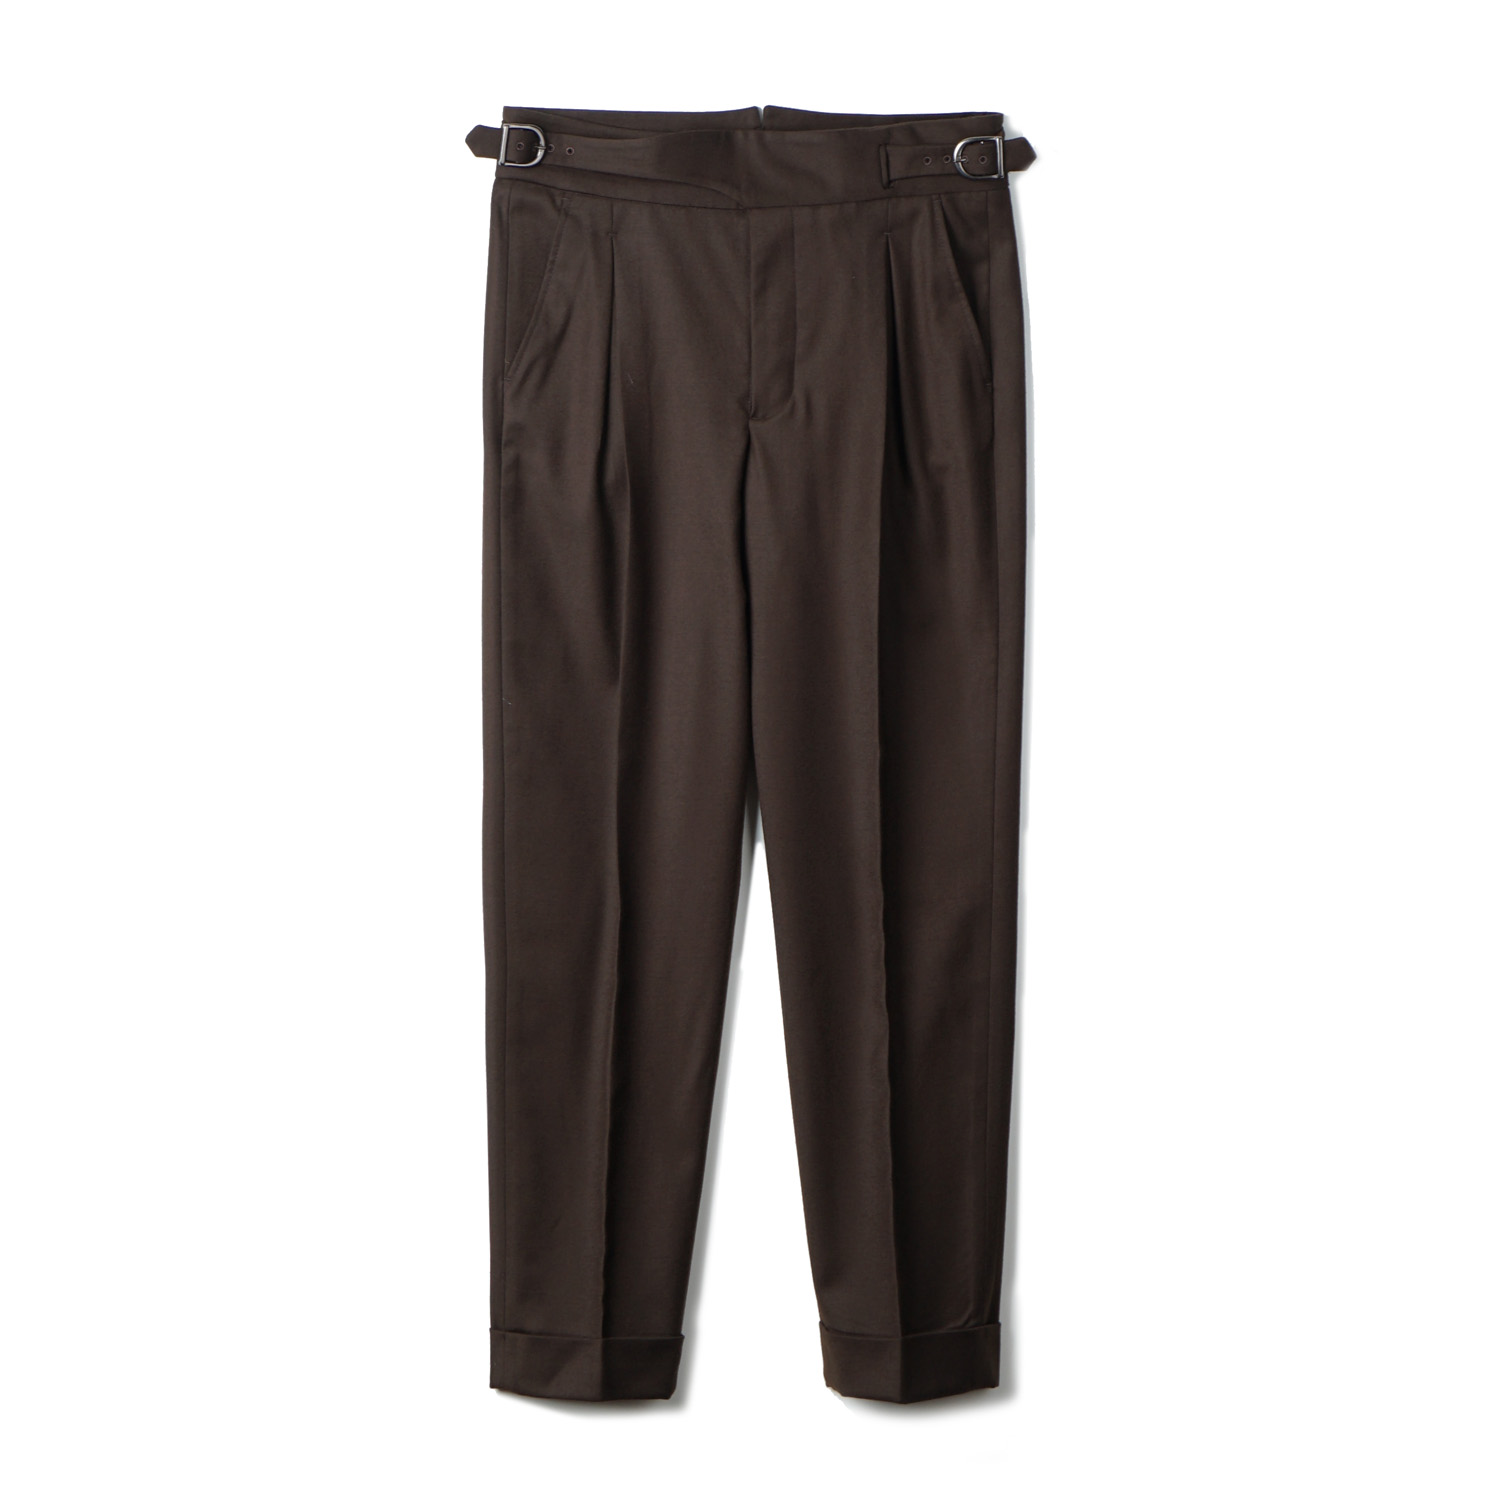 TJA Wool Gurkha Pants - Brown